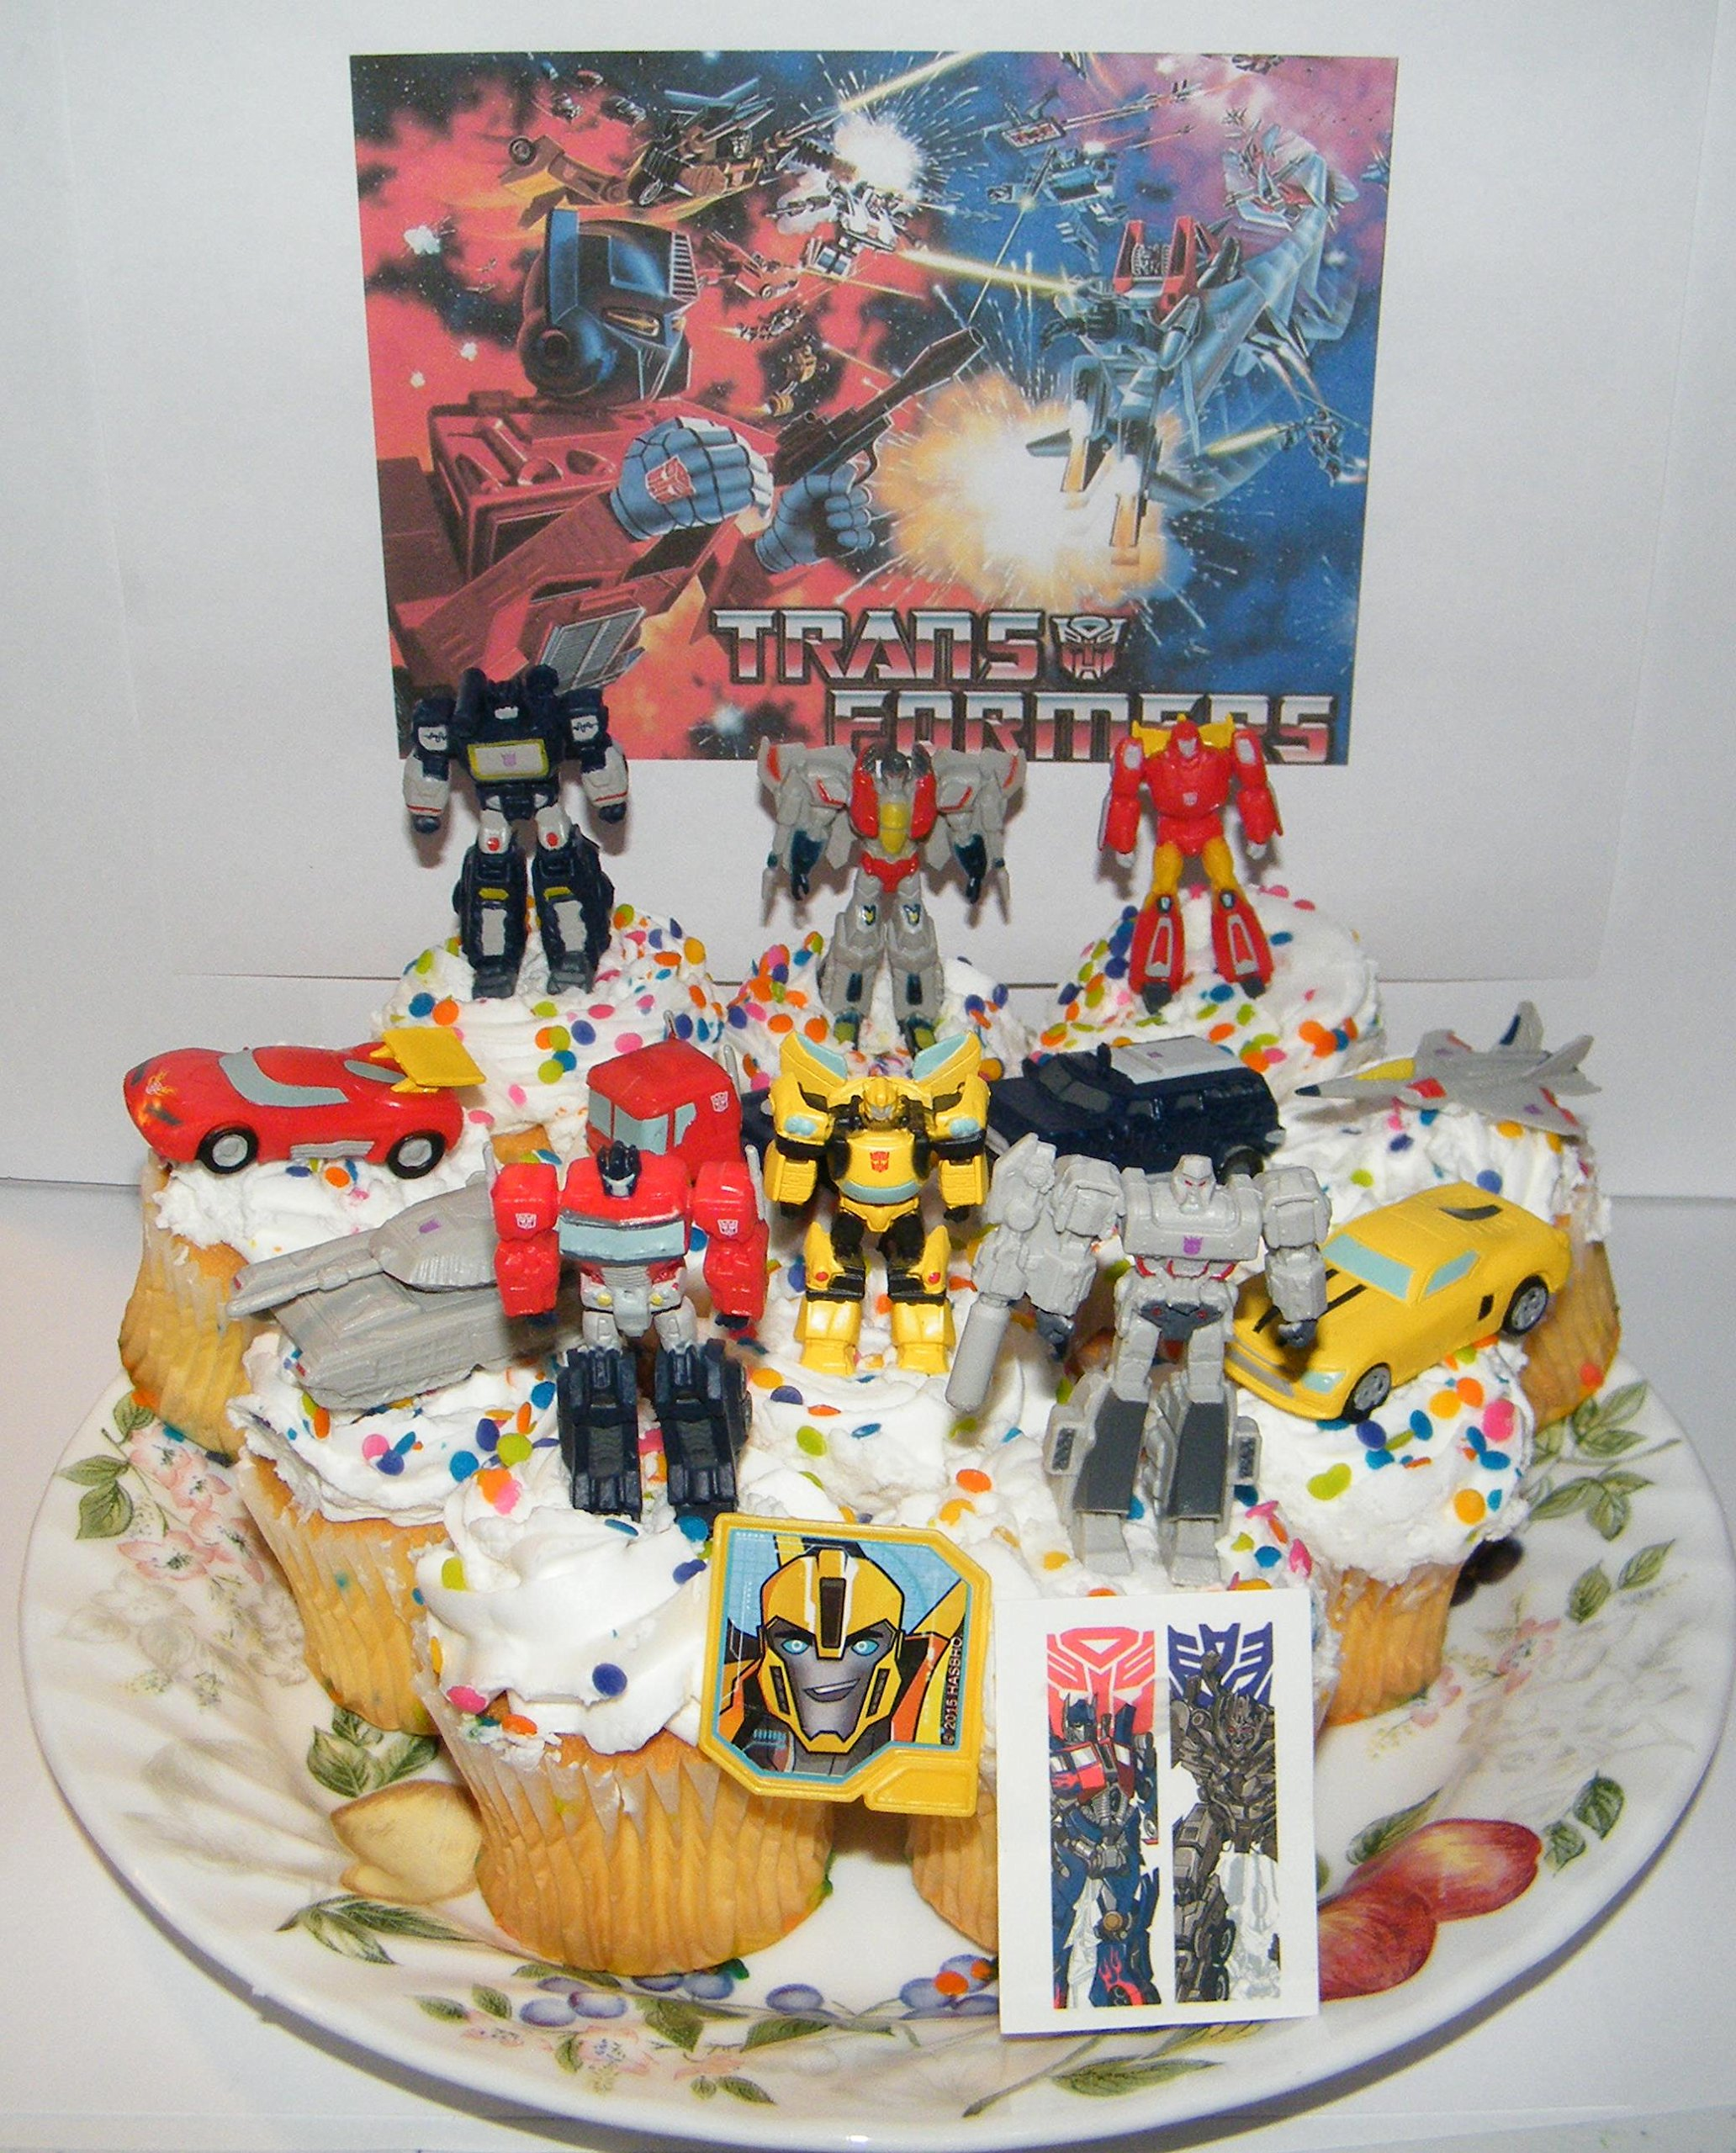 Transformers Deluxe Mini Cake Toppers Cupcake Decorations Set of 14 with 12 Figures and Vehicles, Special Tattoo and ToyRing Featuring Optimus, Bumblebee, Megatron and More! by Party decor Inc